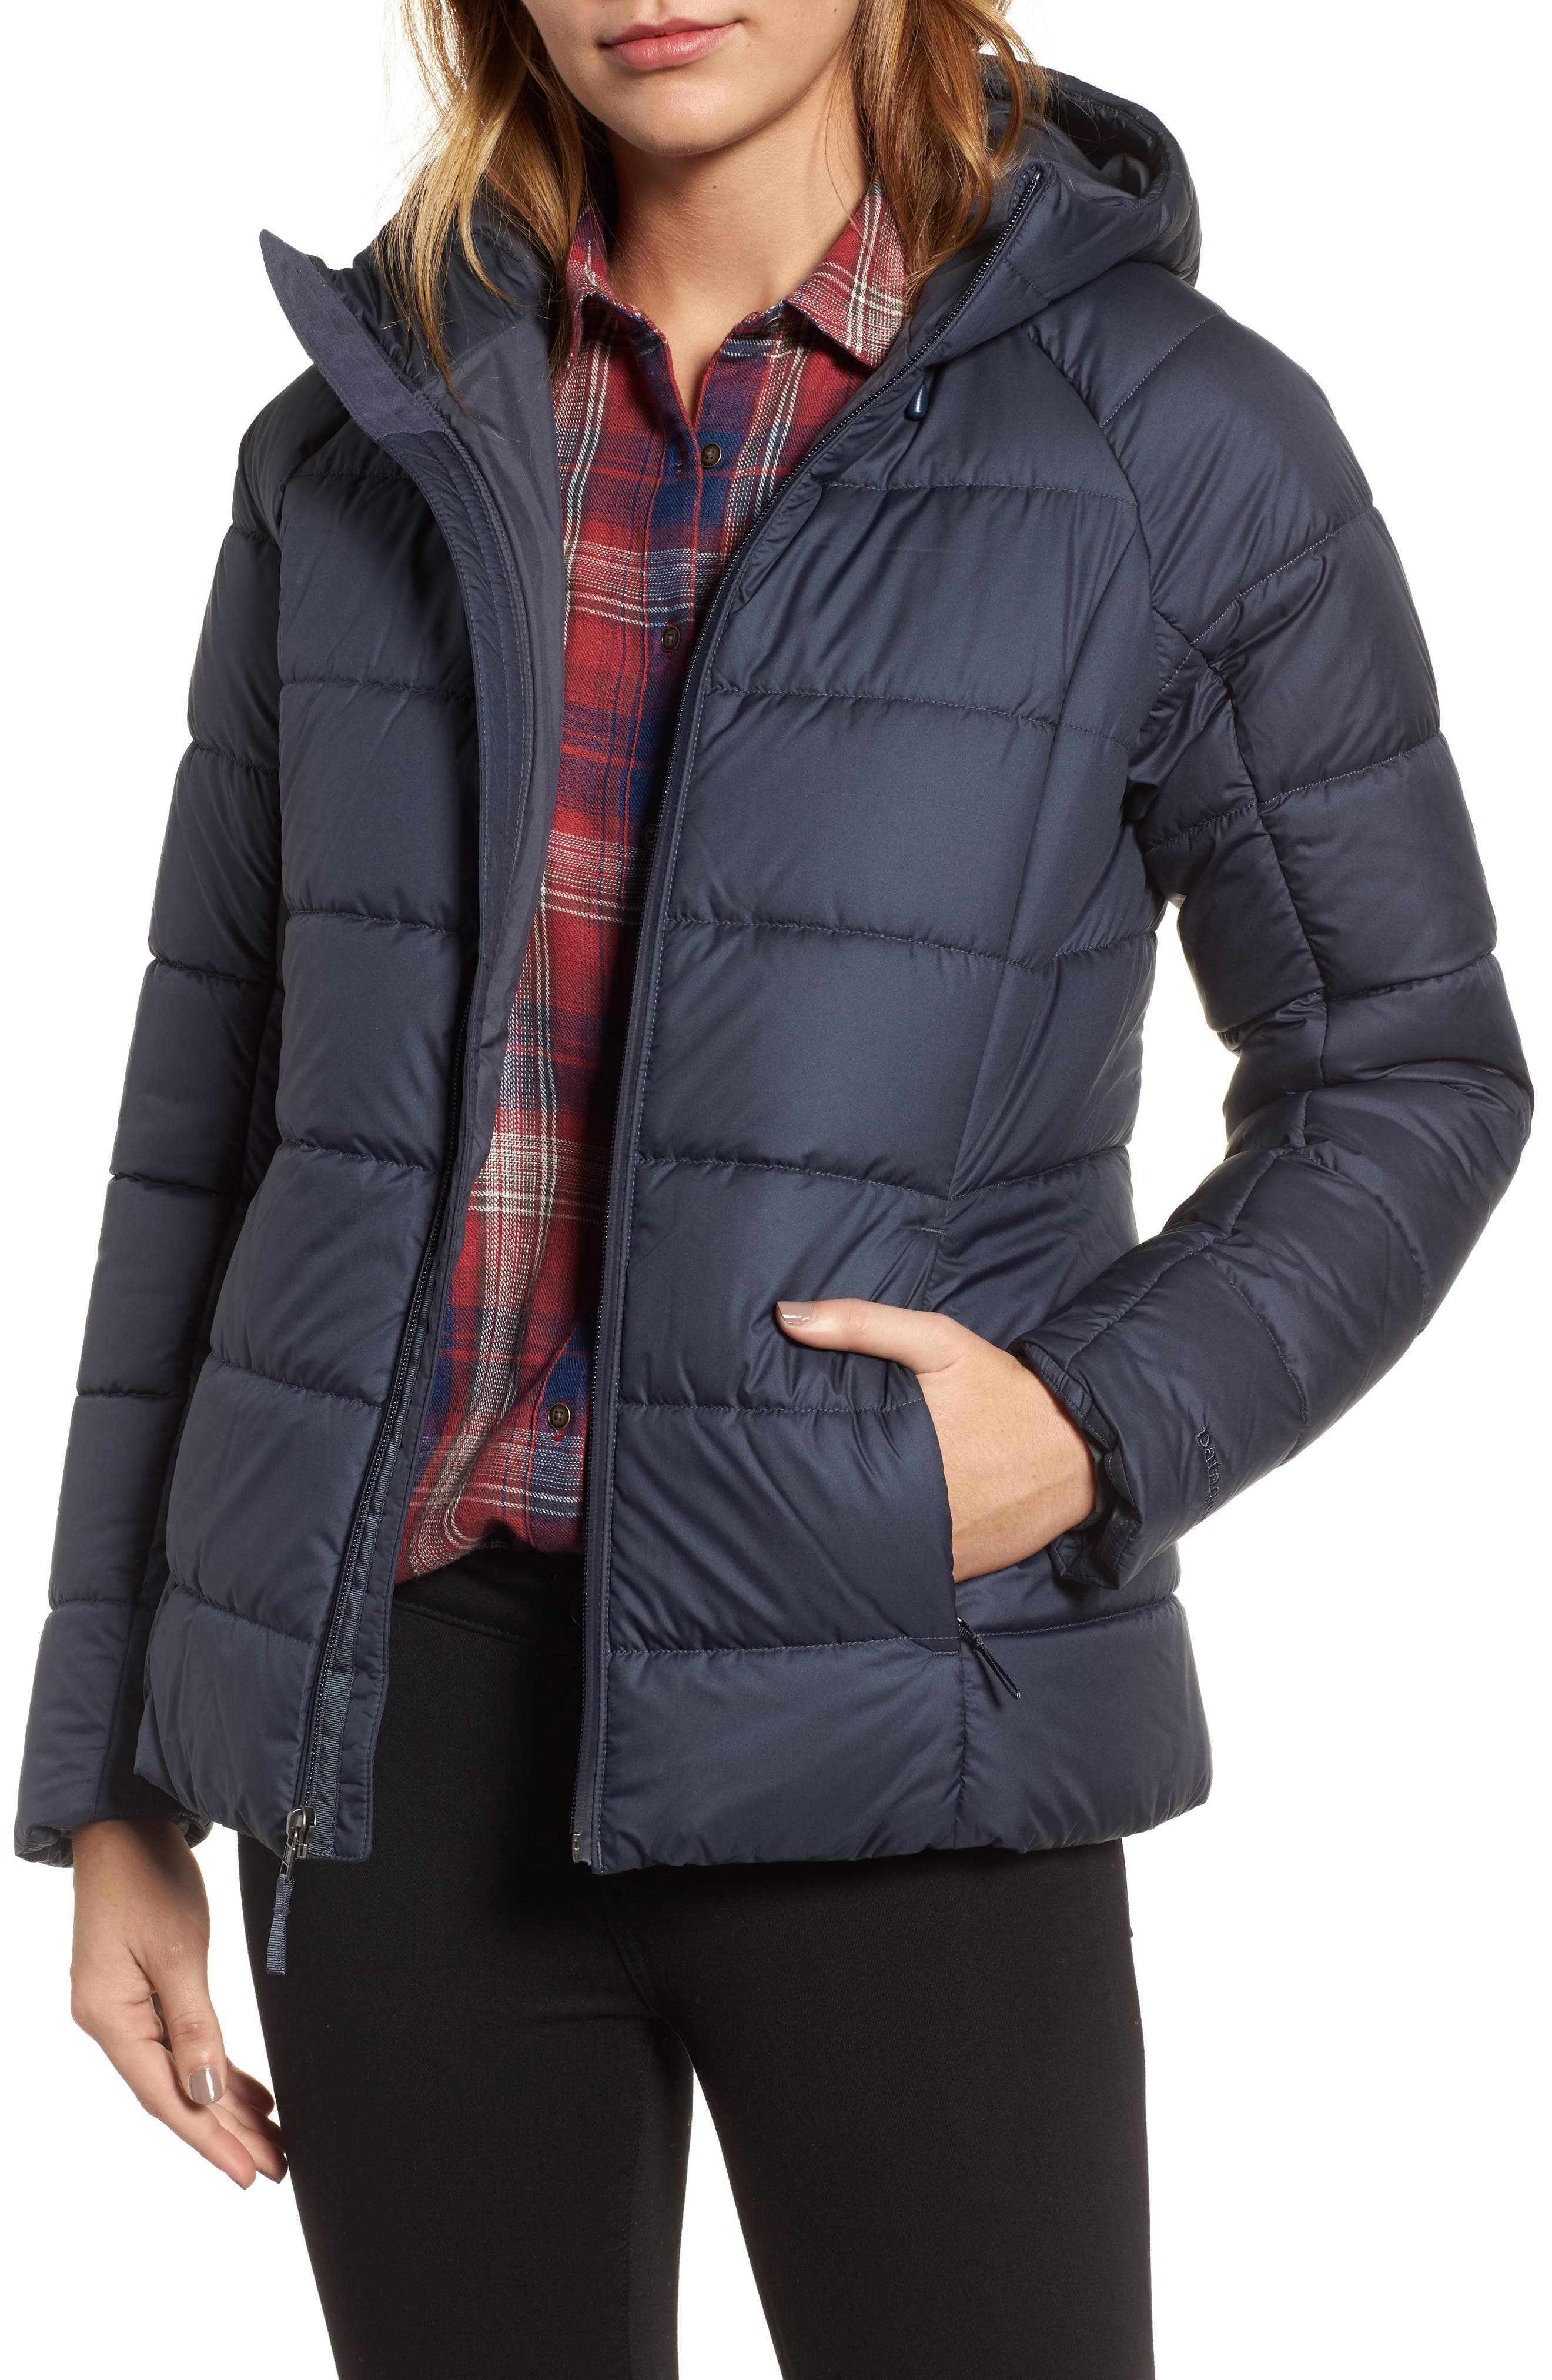 Main Image - Patagonia Transitional HyperDAS™ Insulated Jacket